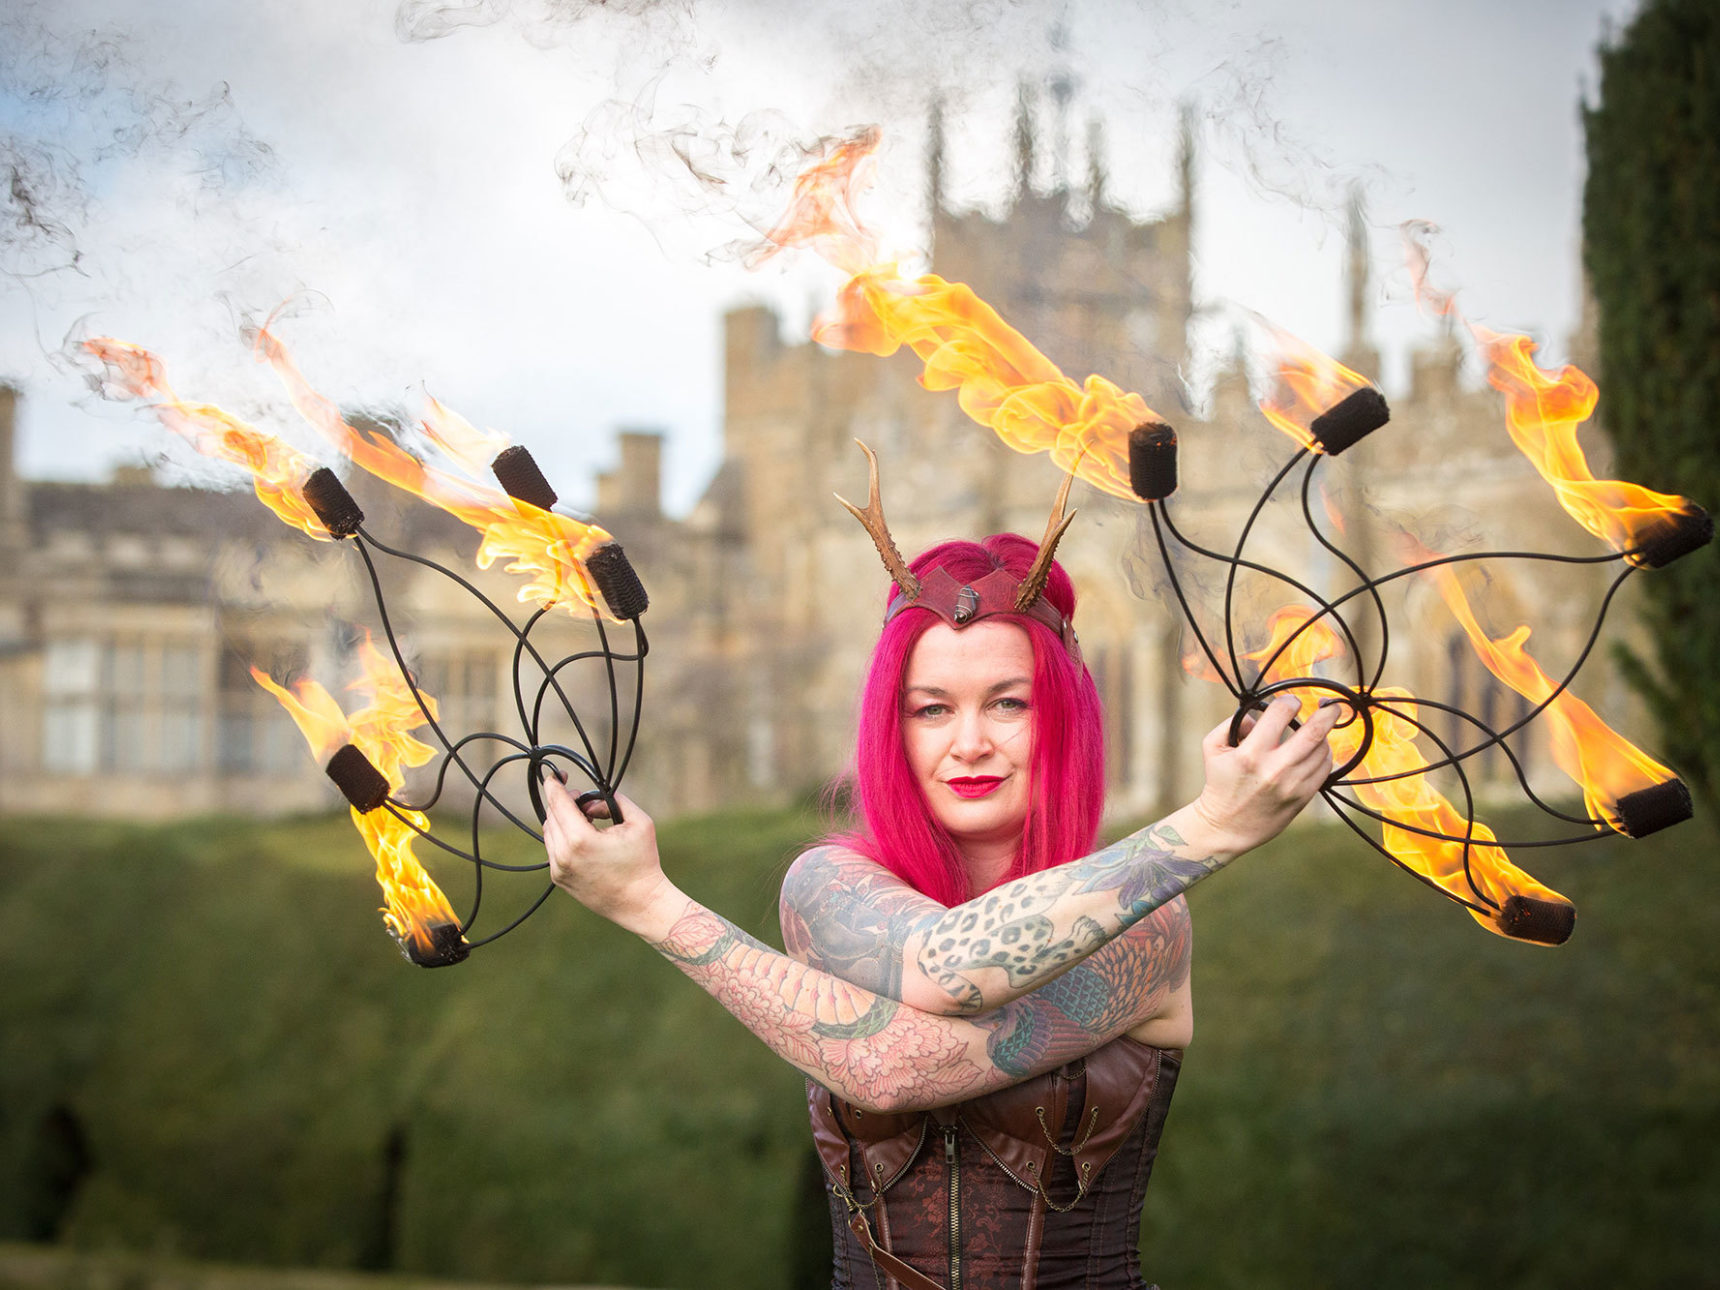 Performer wields flaming props